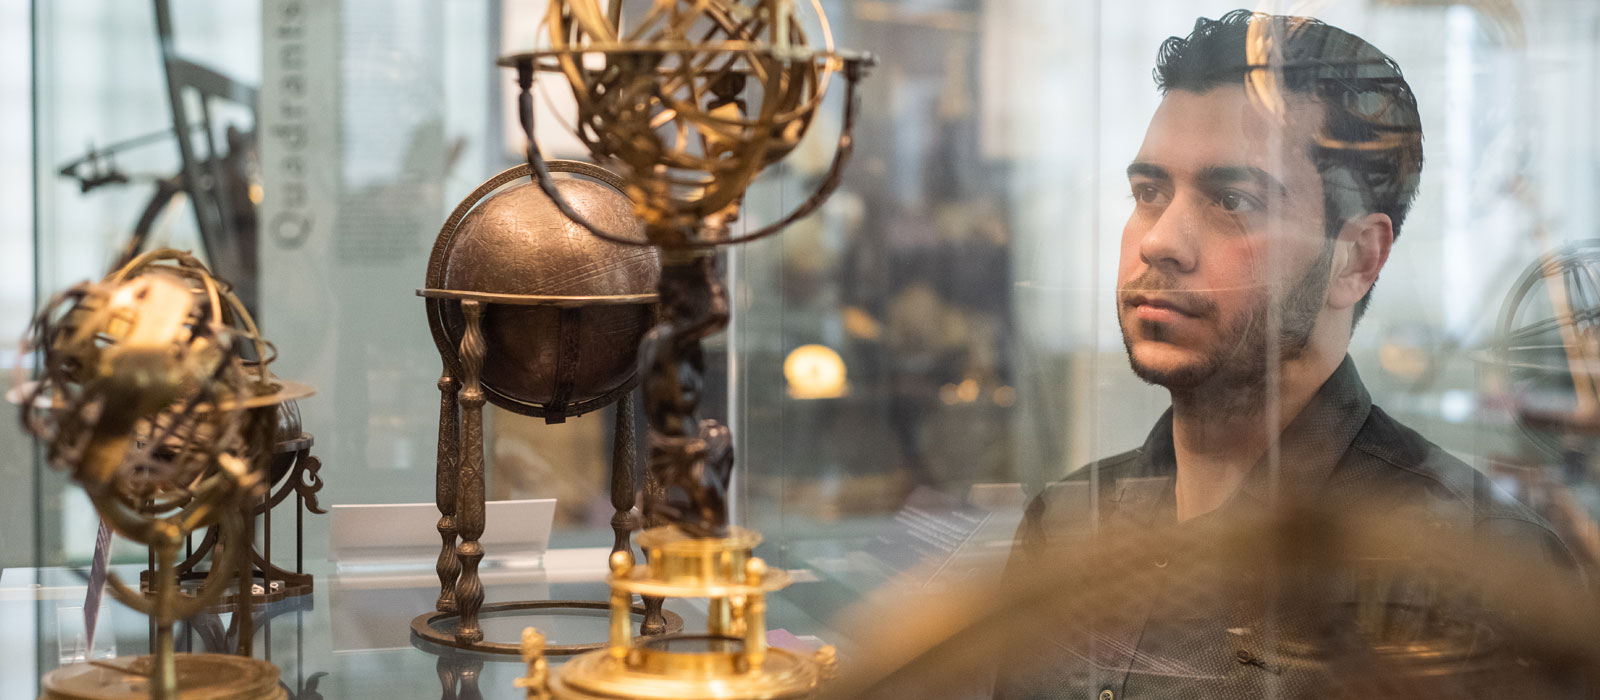 Hussein Ahmed at the History of Science Museum. Photo by John Cairns